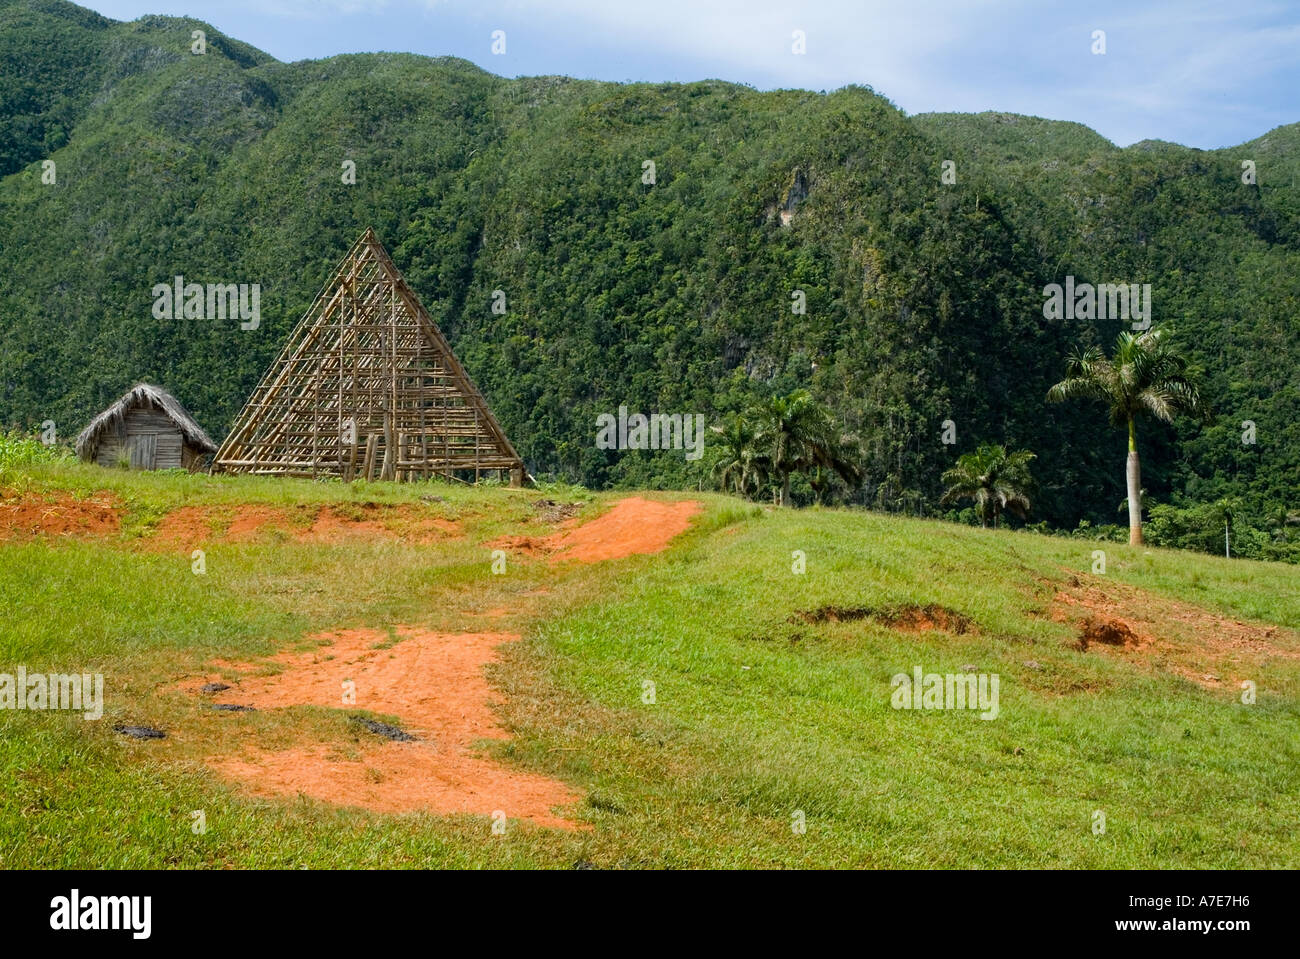 Hut with a traditional thatched roof with coconut trees and the Mogotes in the background, Vinales Valley, Cuba. - Stock Image